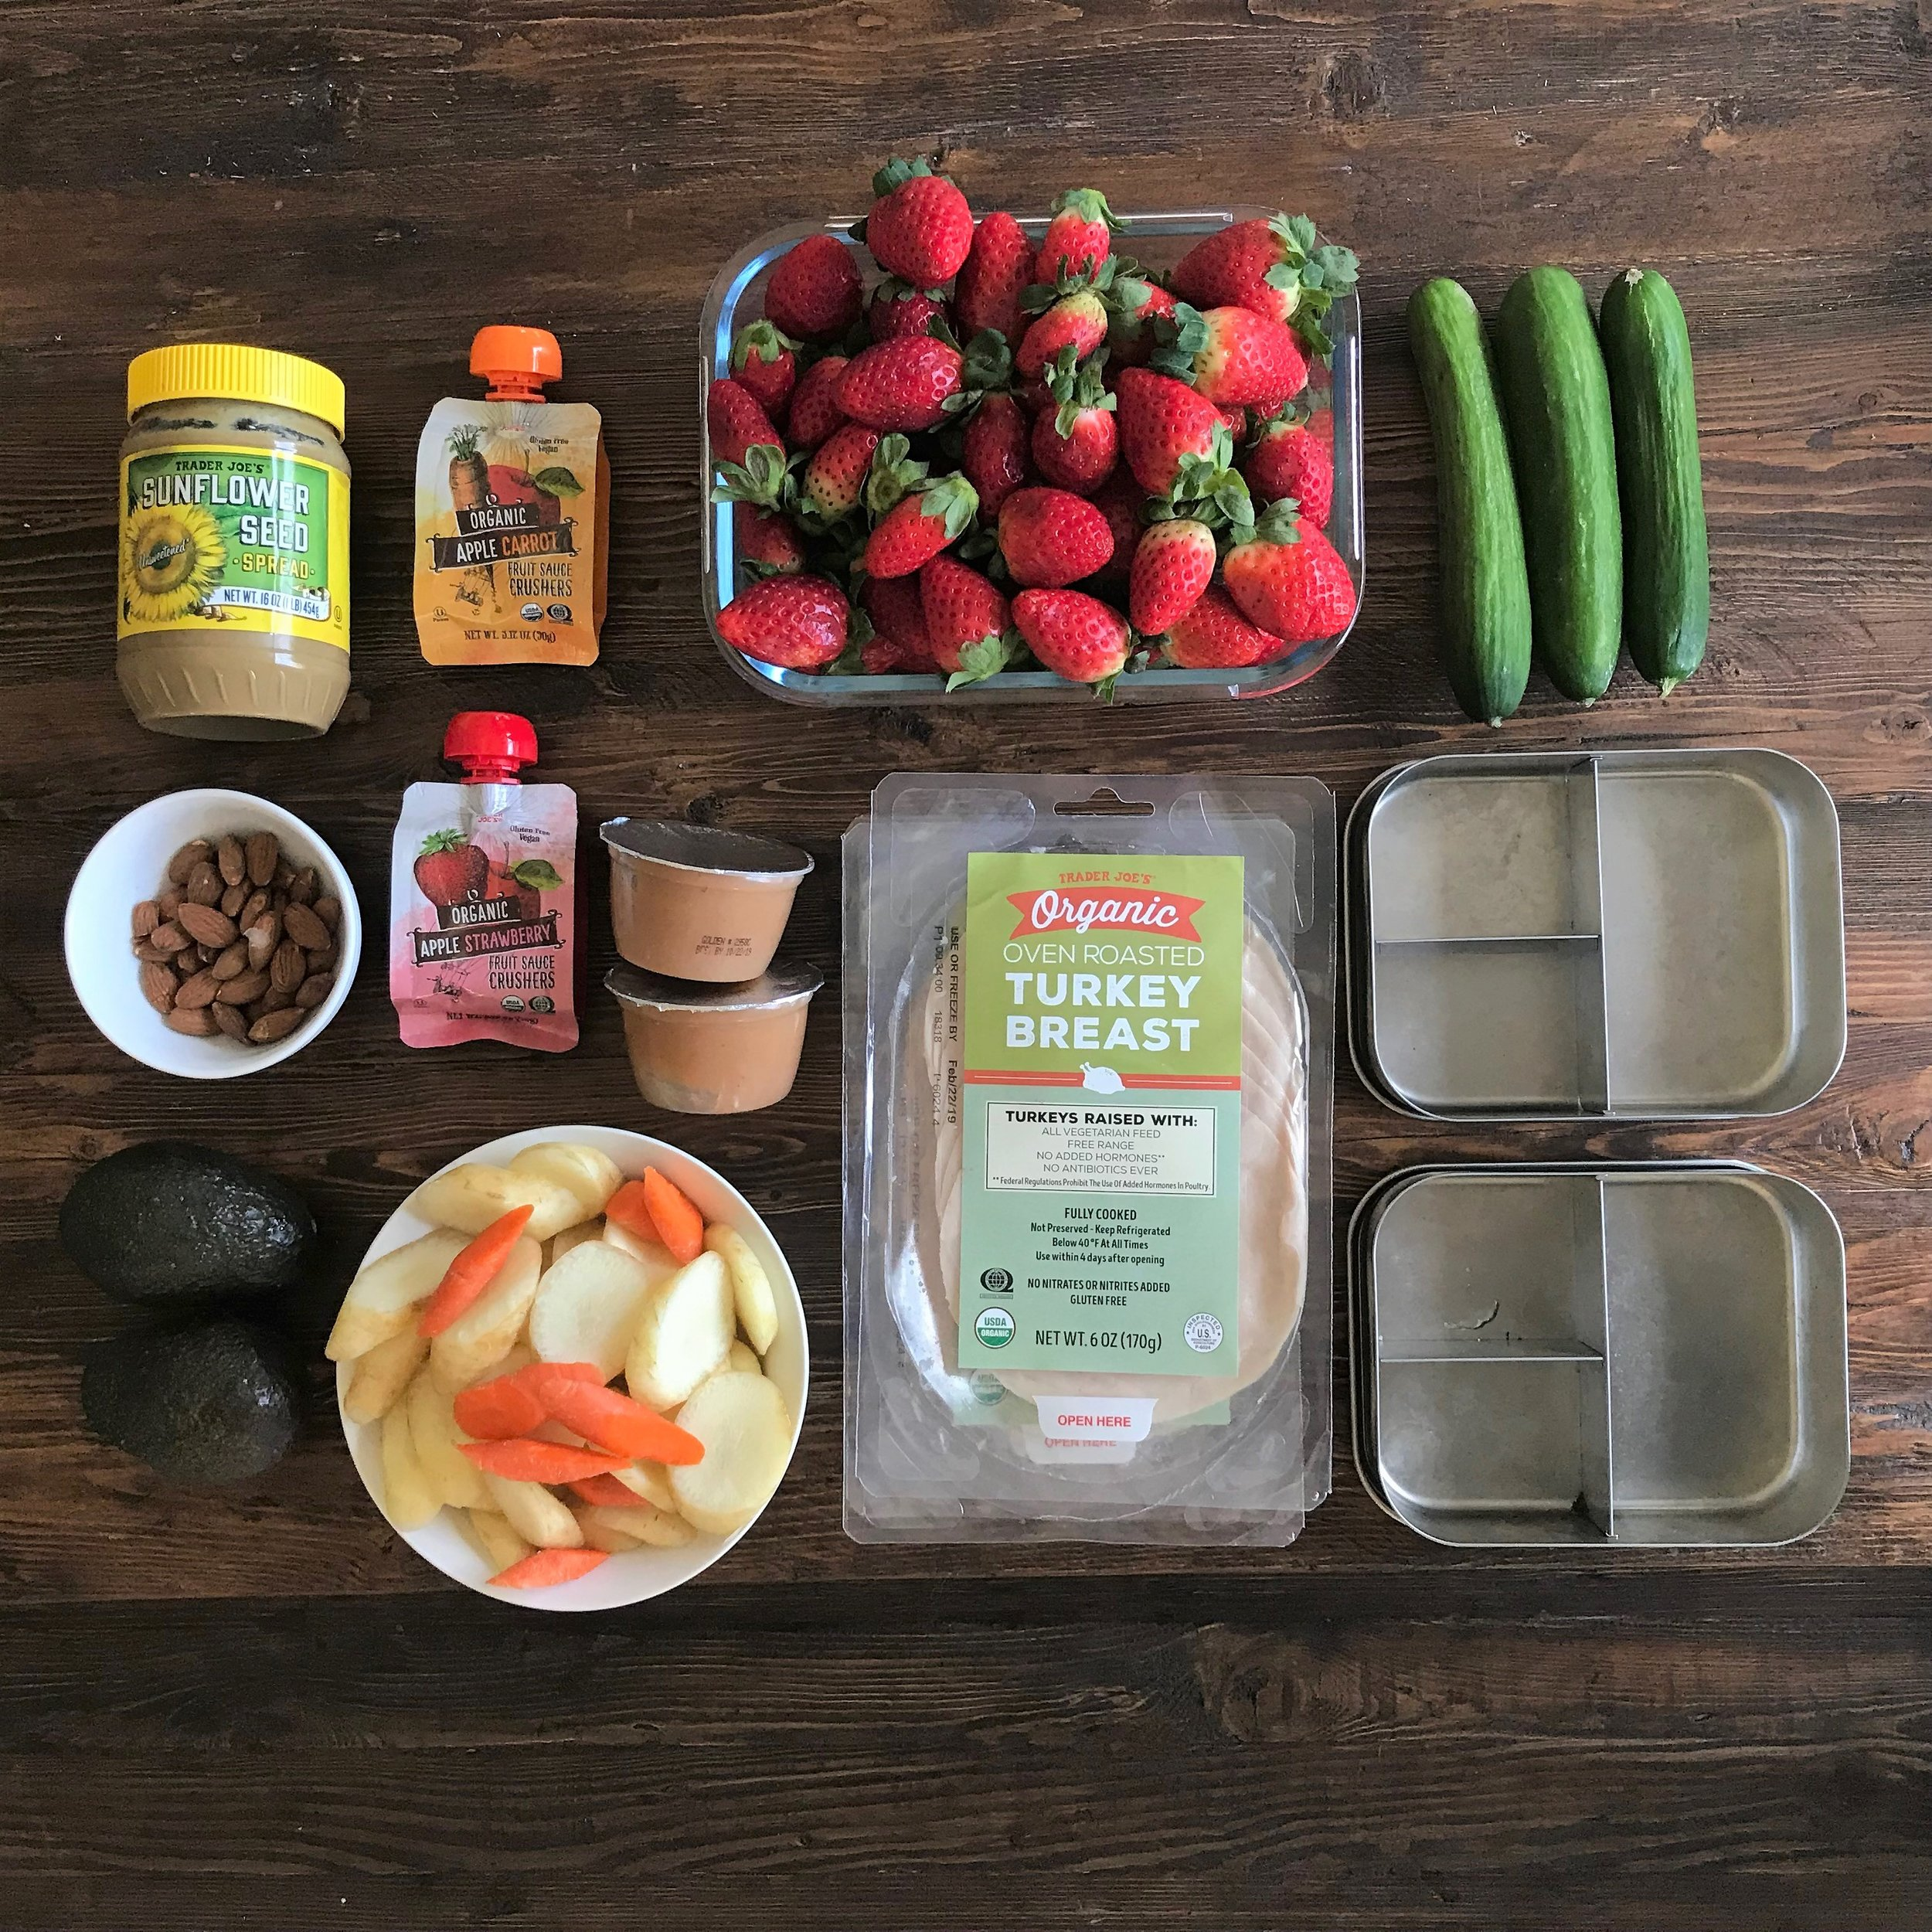 Click for the link to these stainless steel lunch boxes on amazon!